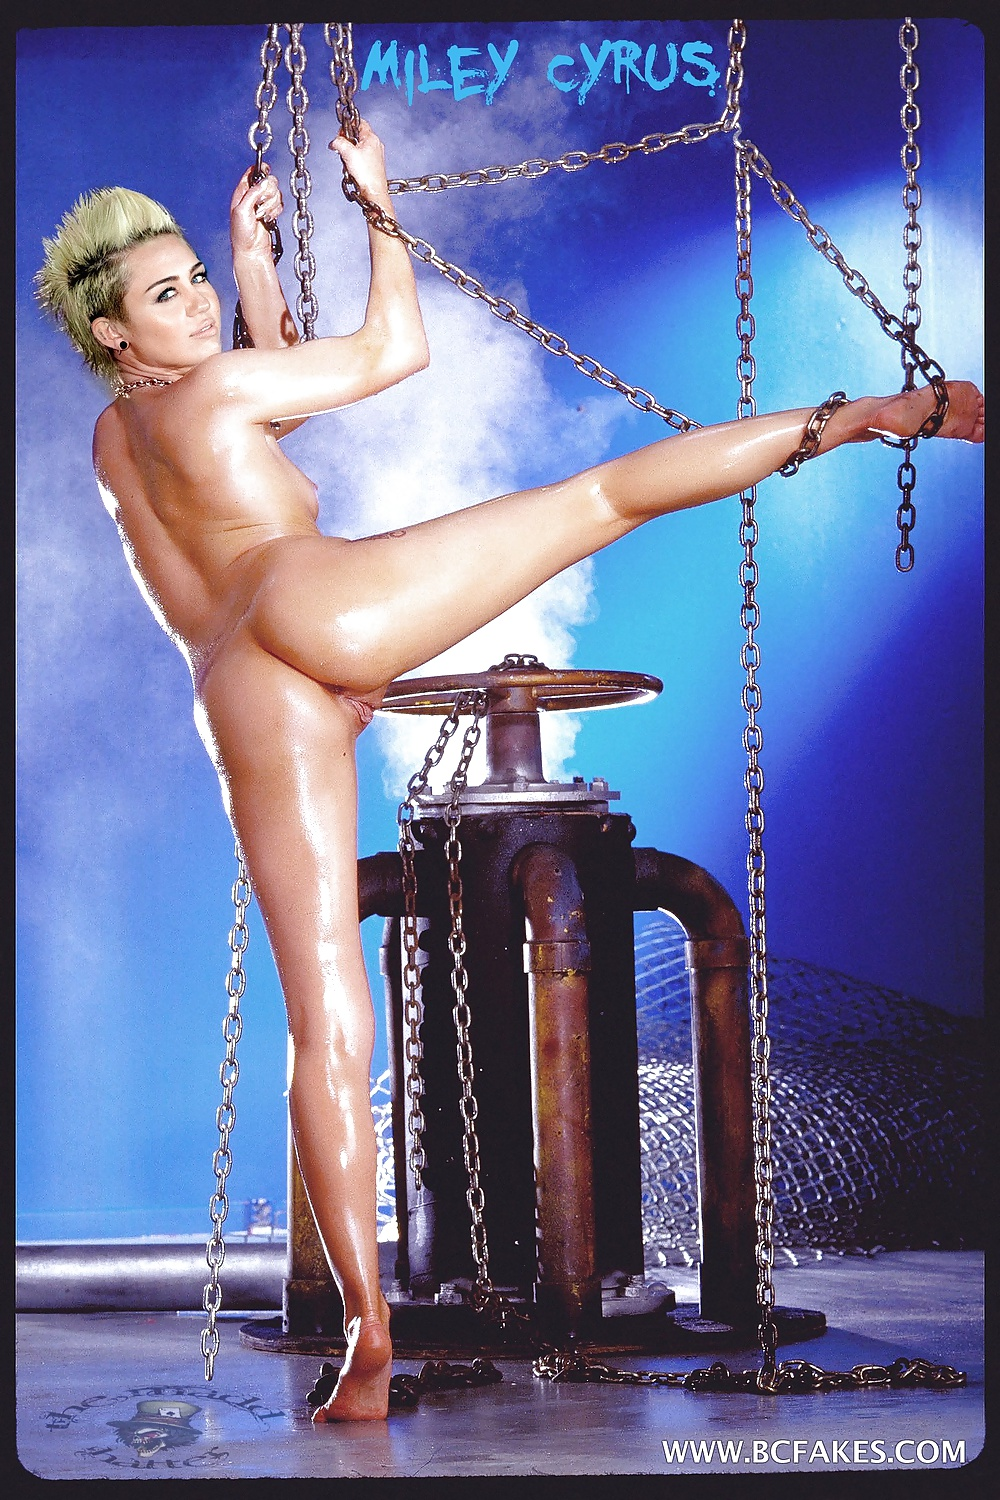 Miley Cyrus Showing Off Her Pussy - 30 Pics - Xhamstercom-2911